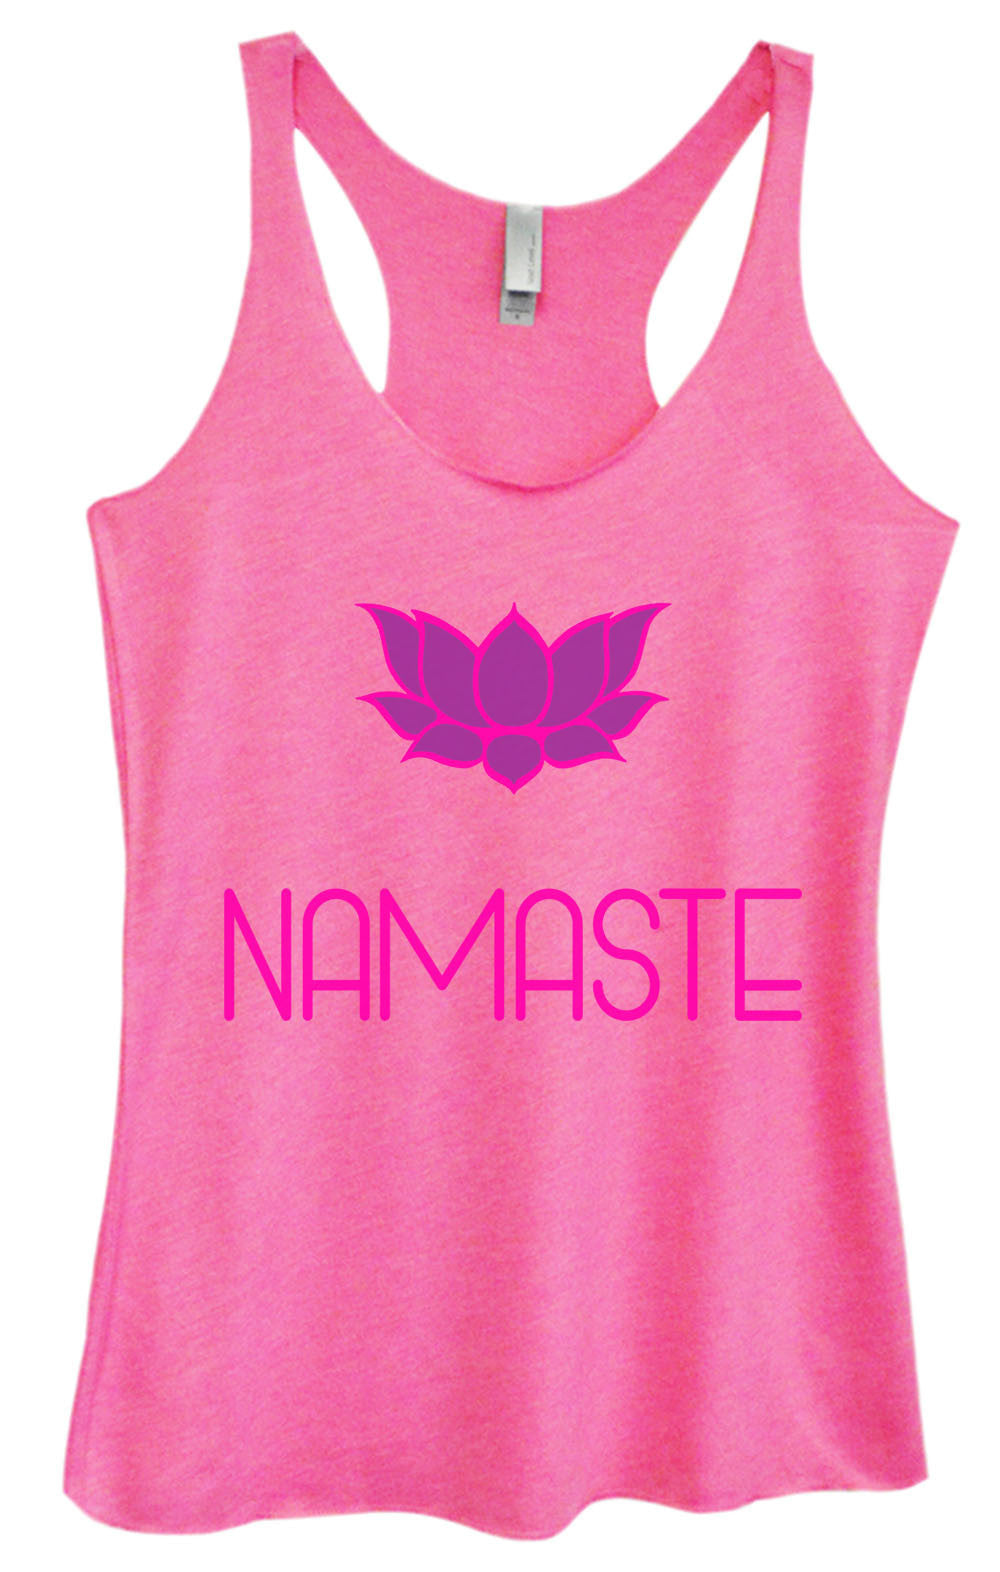 Womens Fashion Triblend Tank Top - Namaste - Tri-631 - Funny Shirts Tank Tops Burnouts and Triblends  - 1